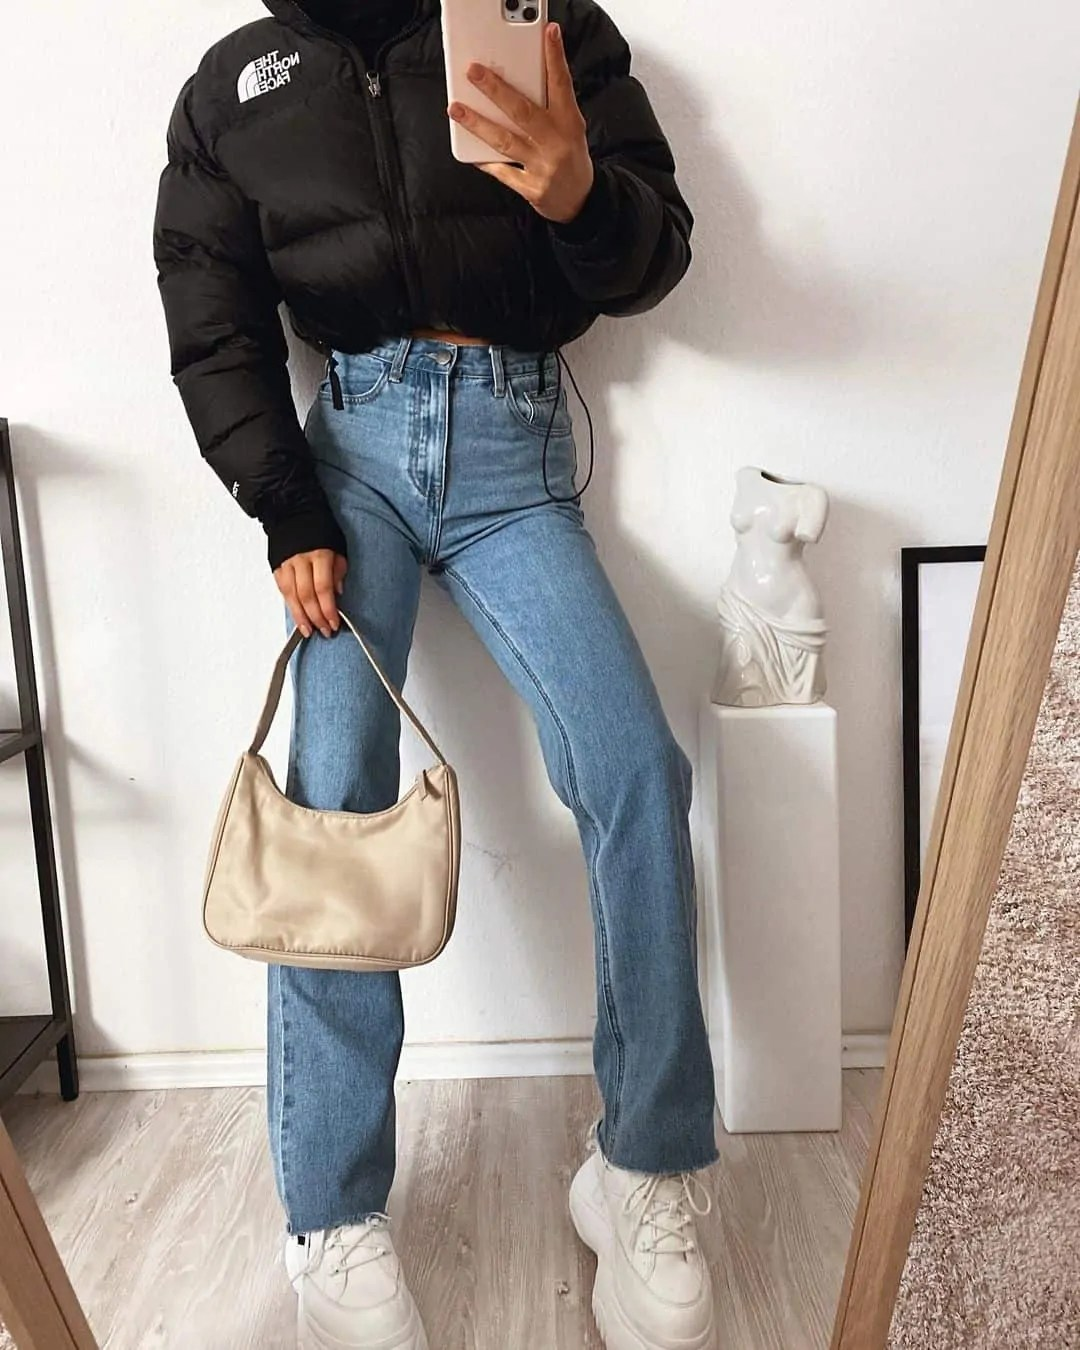 100+ fashion inspo outfits that you have to see no matter what your style is 3